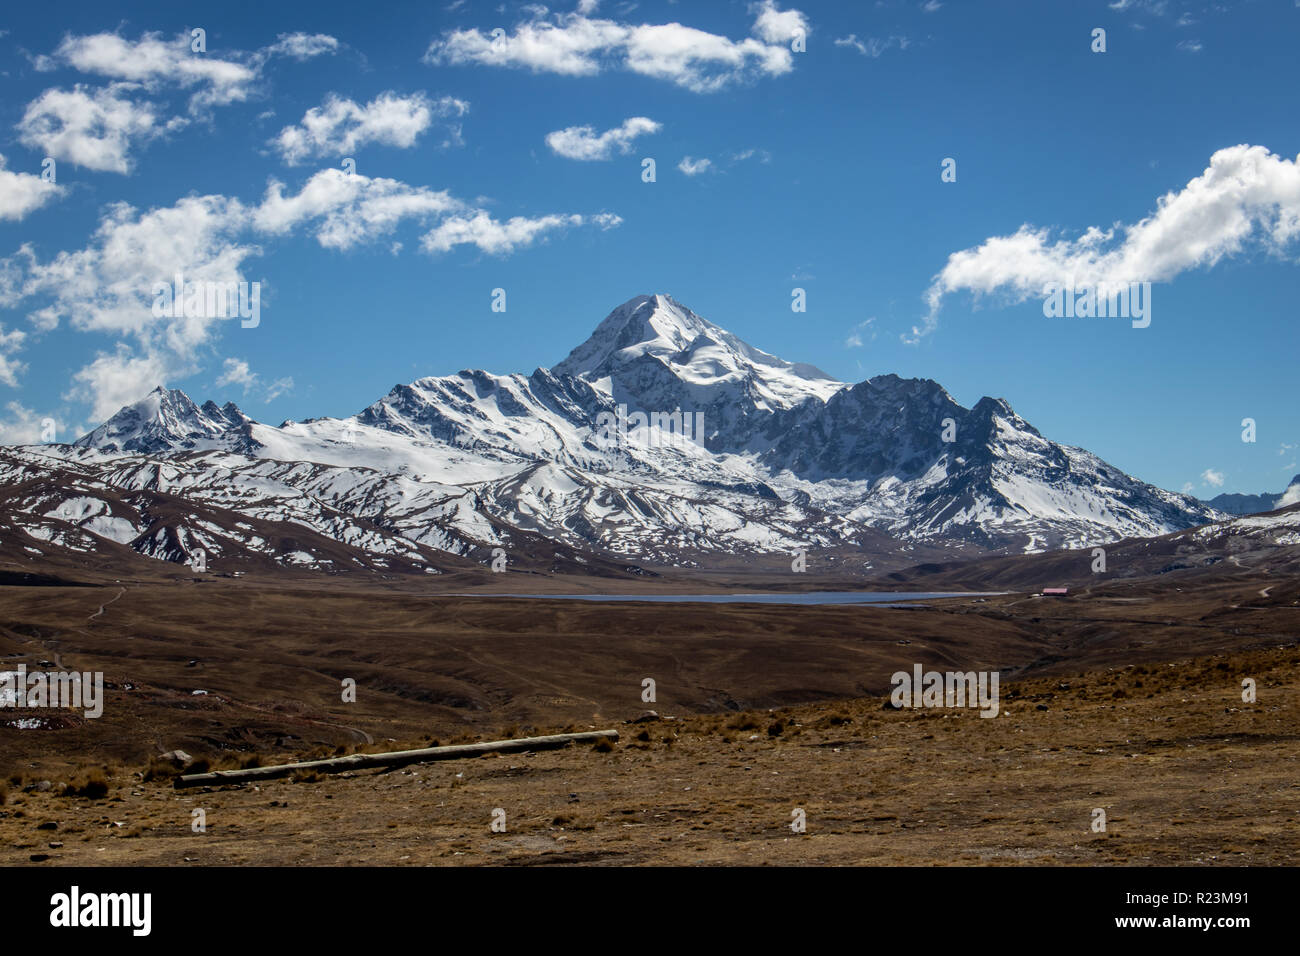 View of Huayna Potosi mountain in Cordillera Real near La Paz, Bolivia - Stock Image